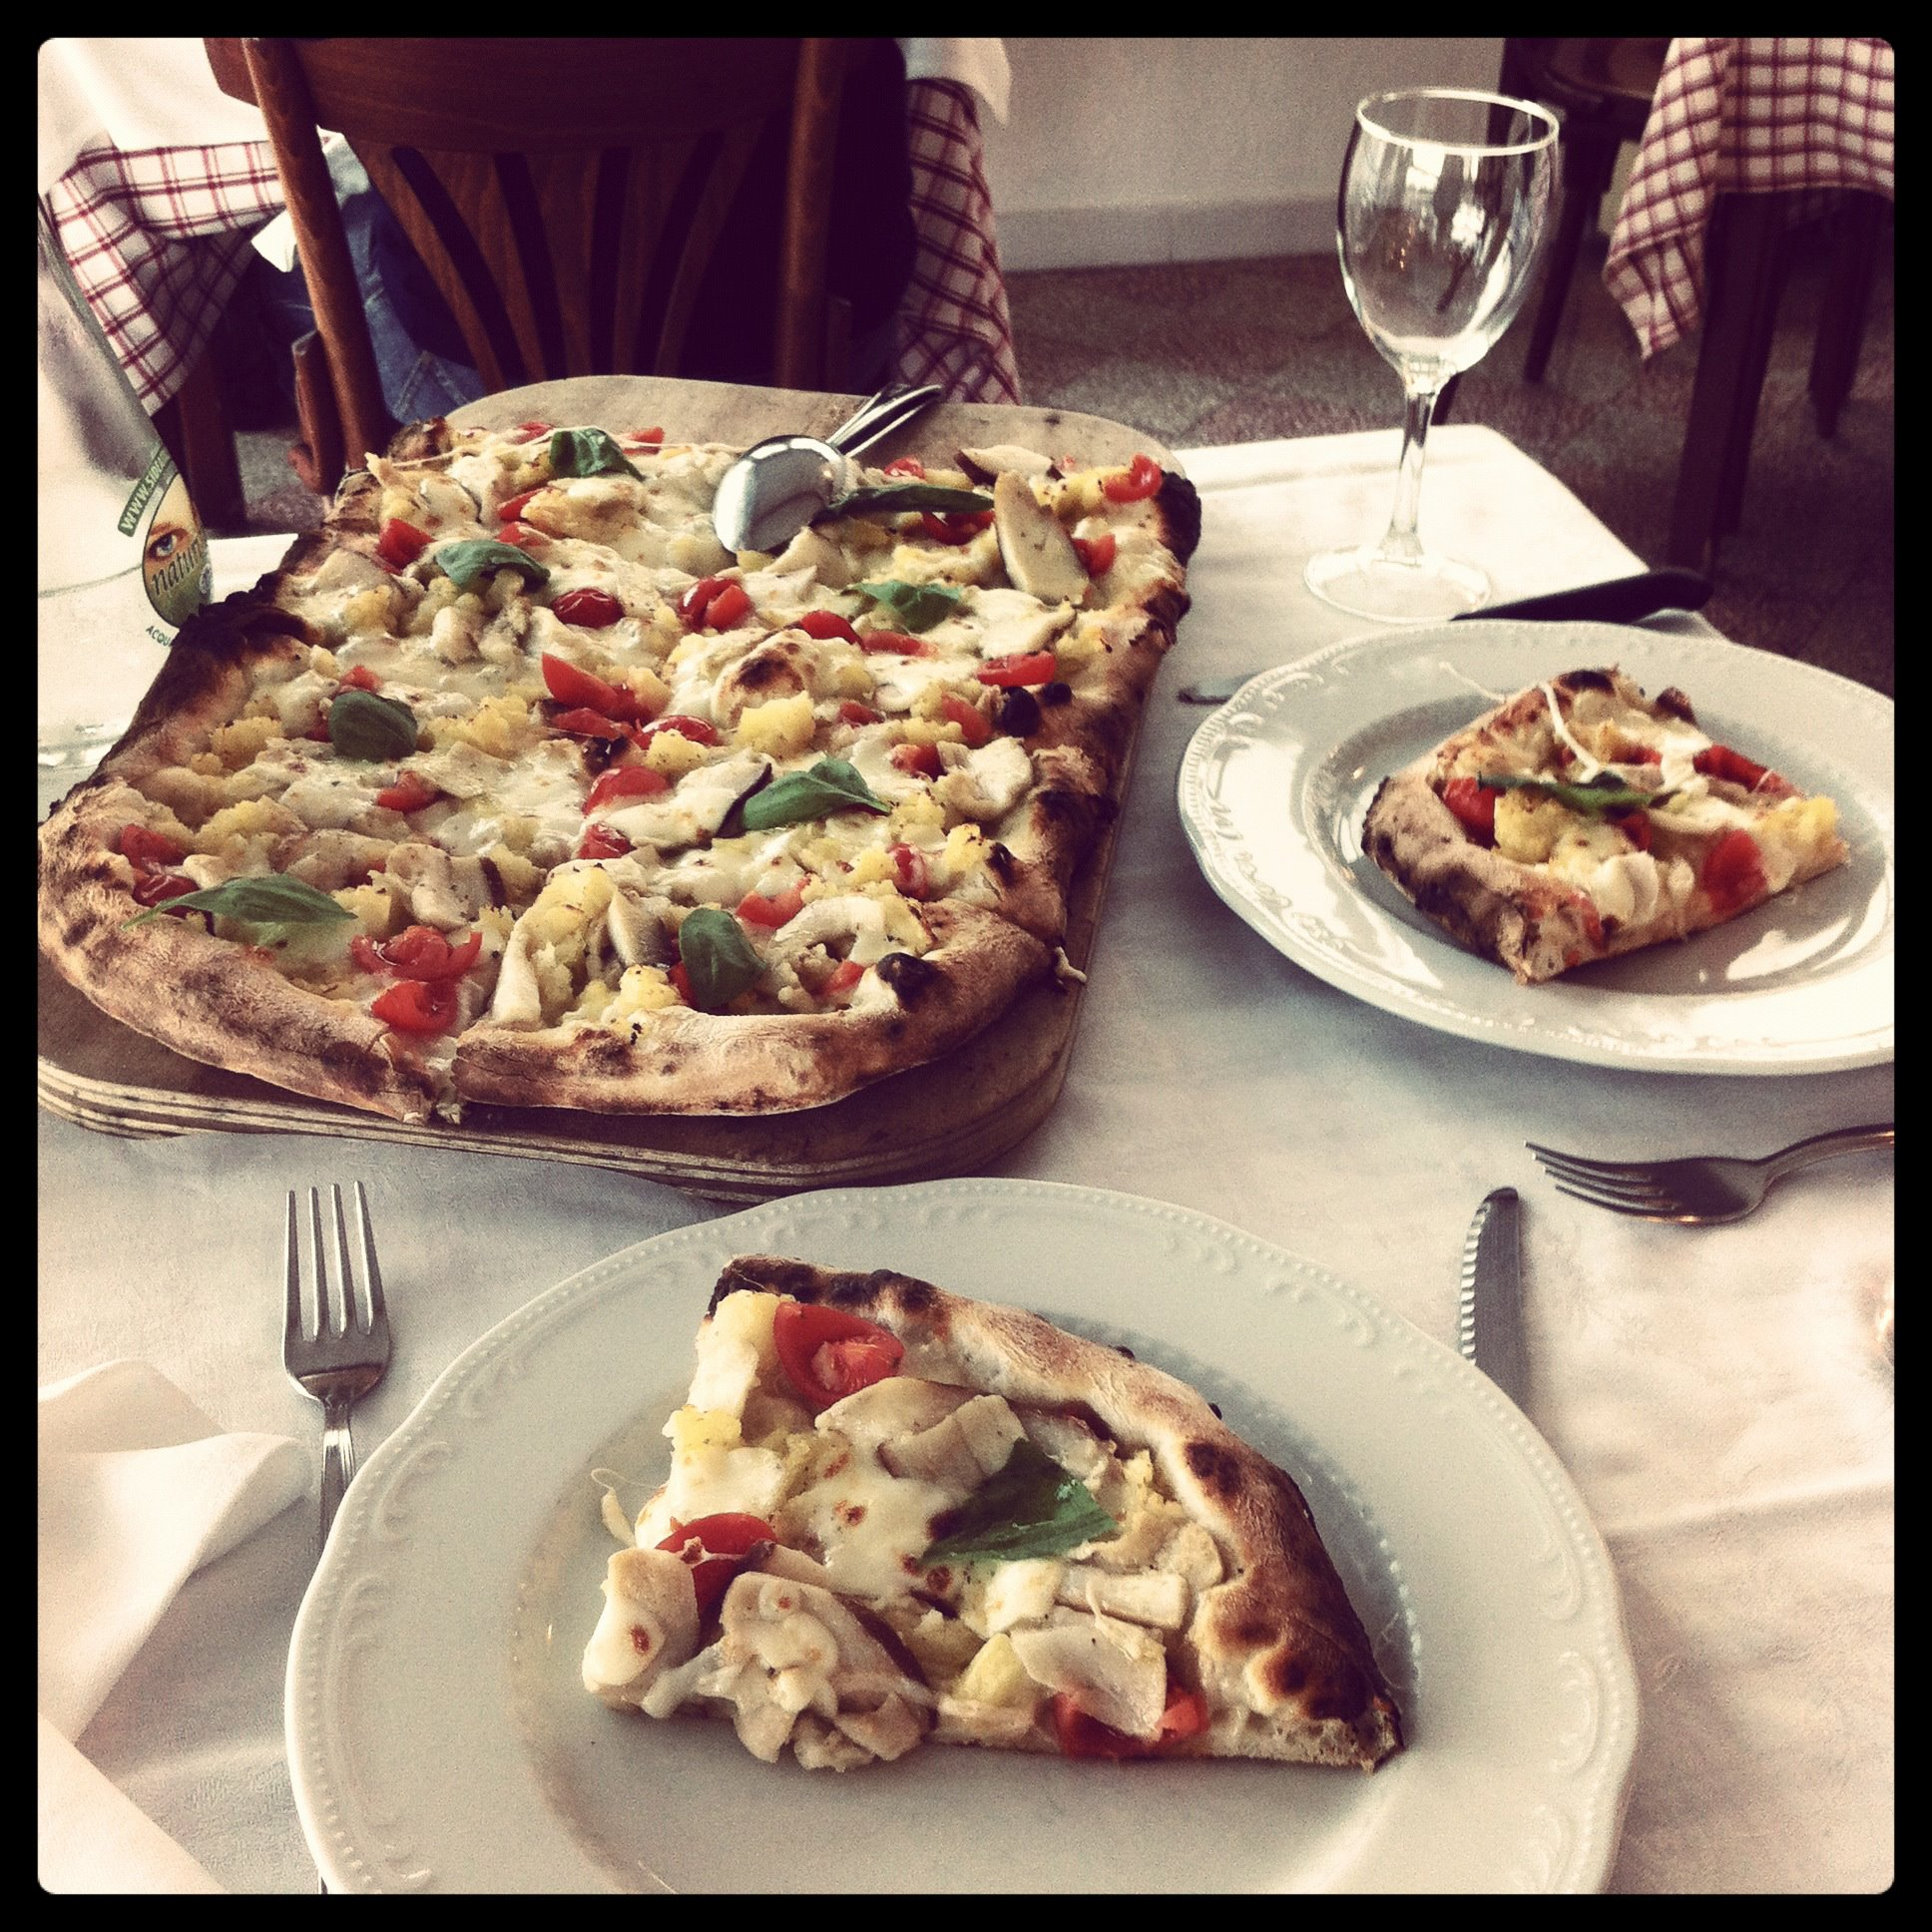 The most beautiful pizza ever - in a restaurant in Praiano on the Amalfi Coast, Italy